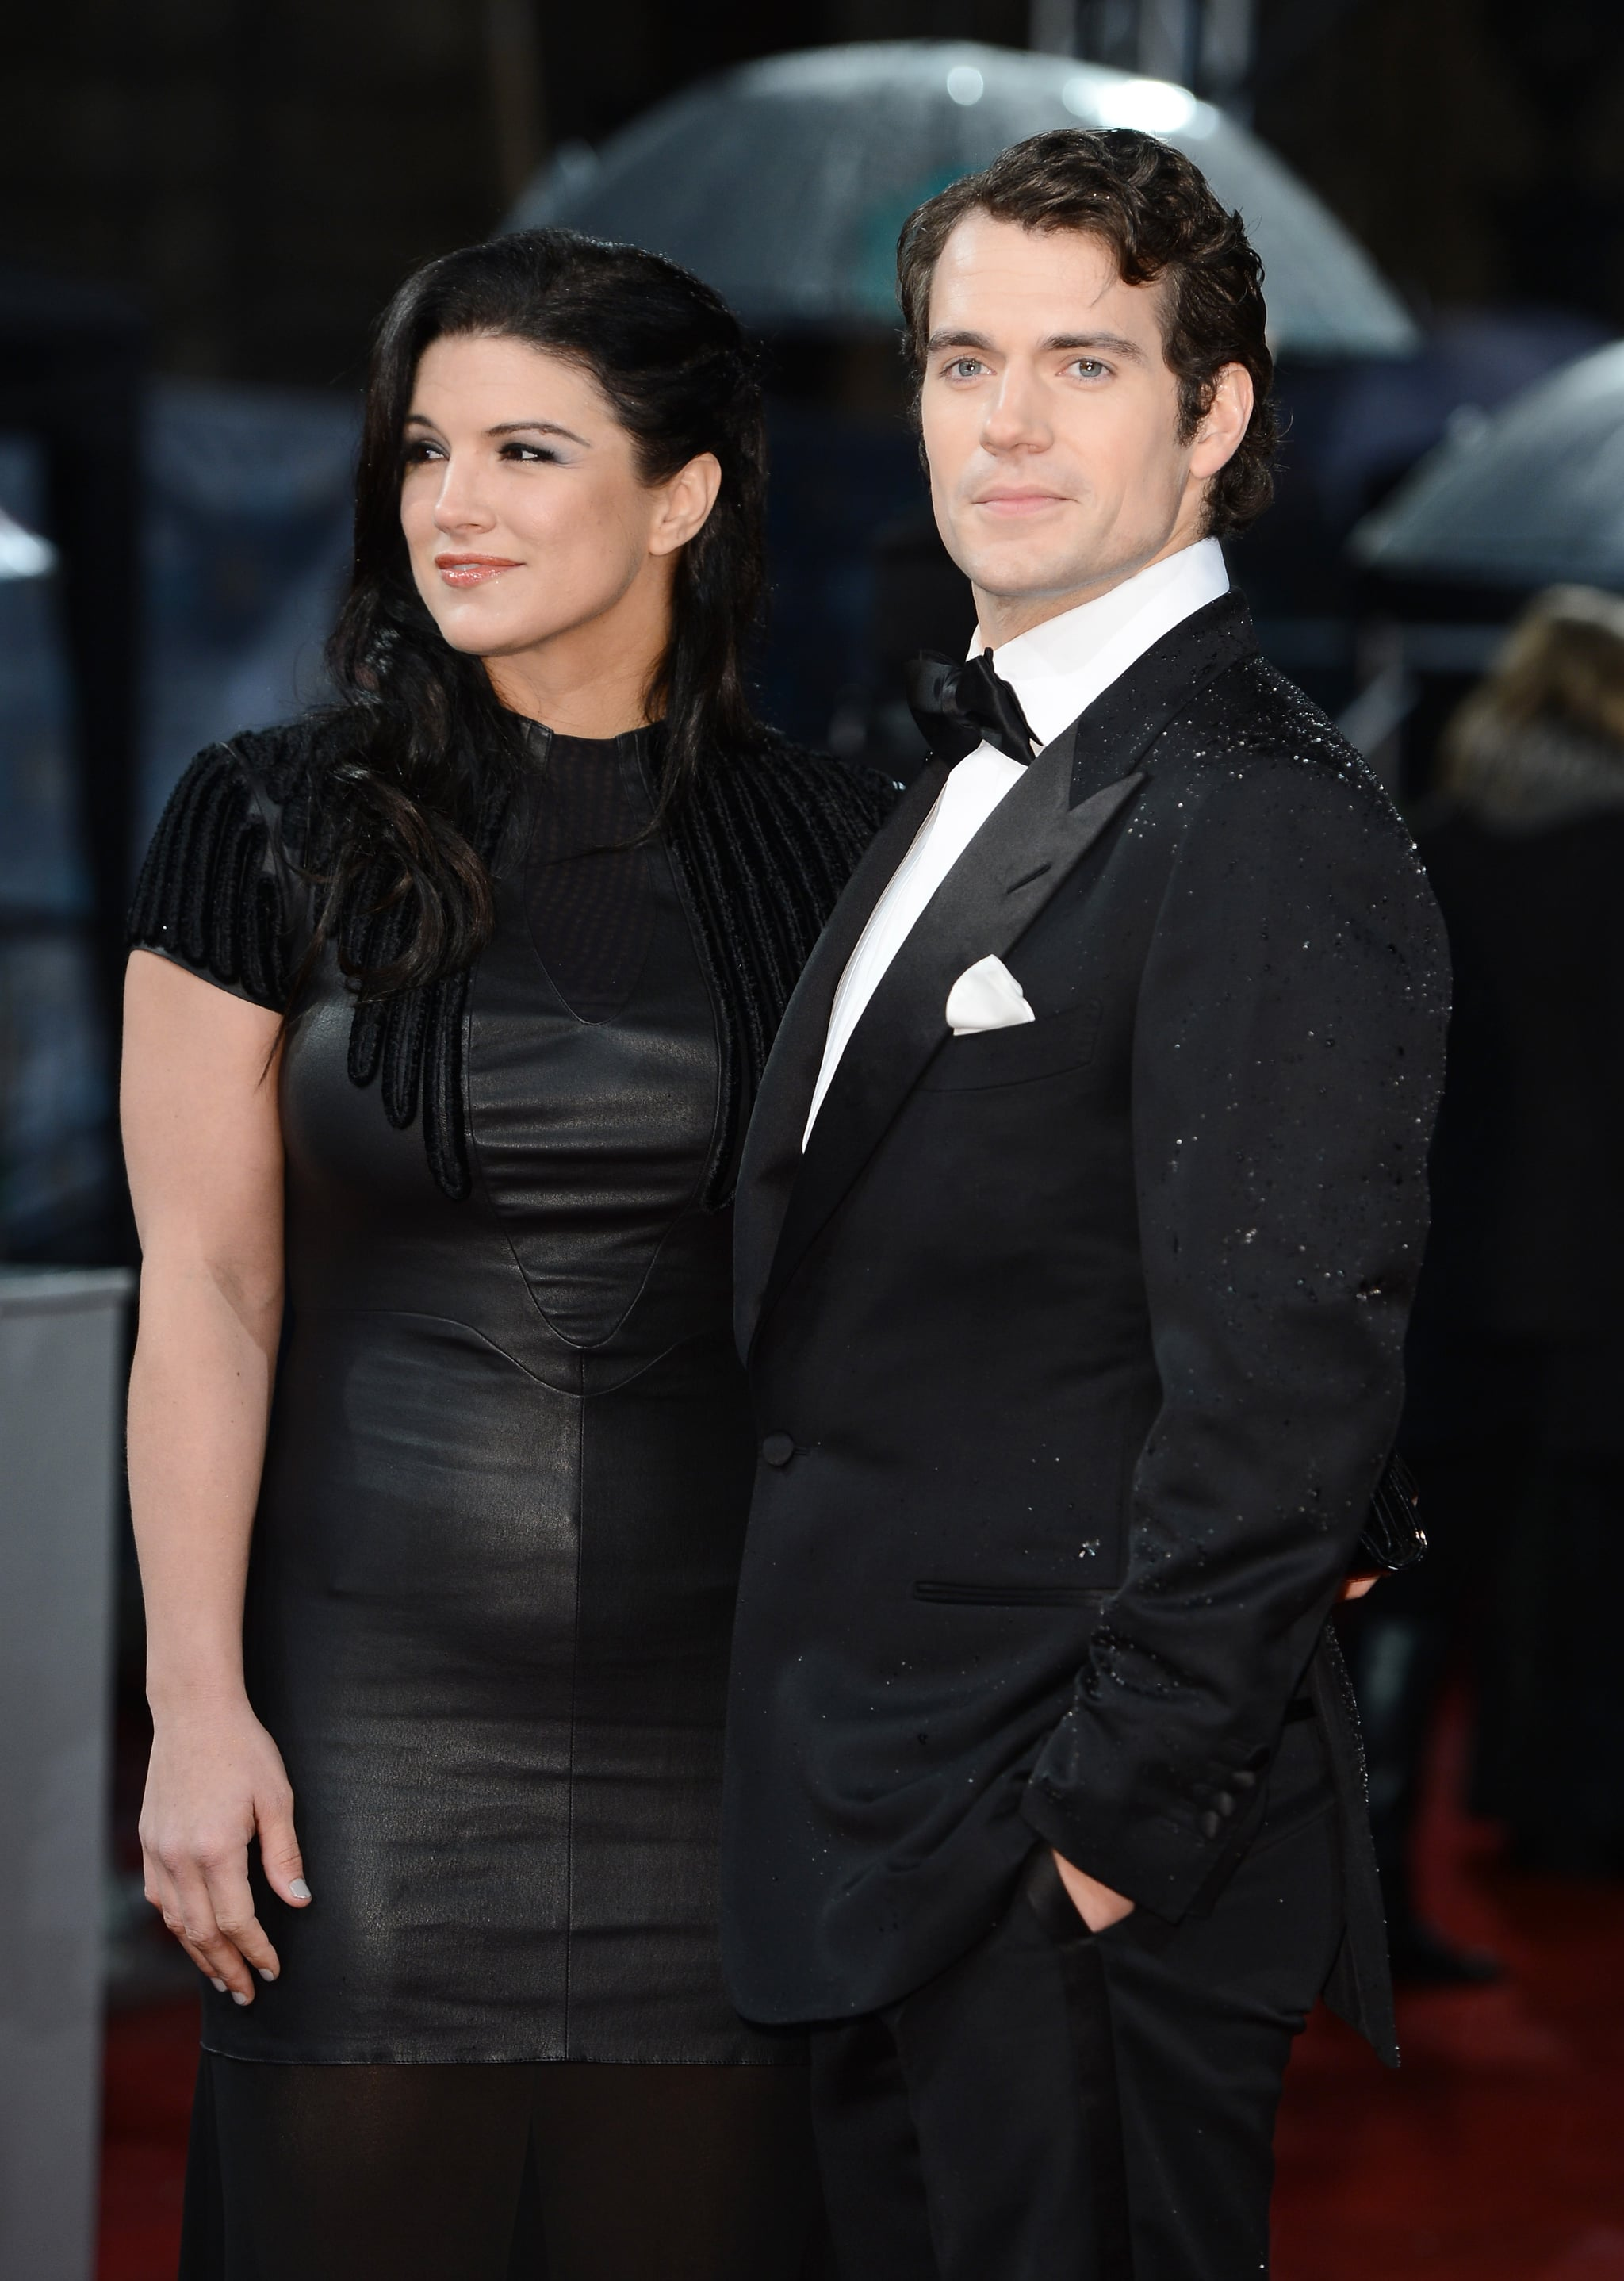 Henry Cavill and Gina Carano | Fawn Over All the Fabulous ...